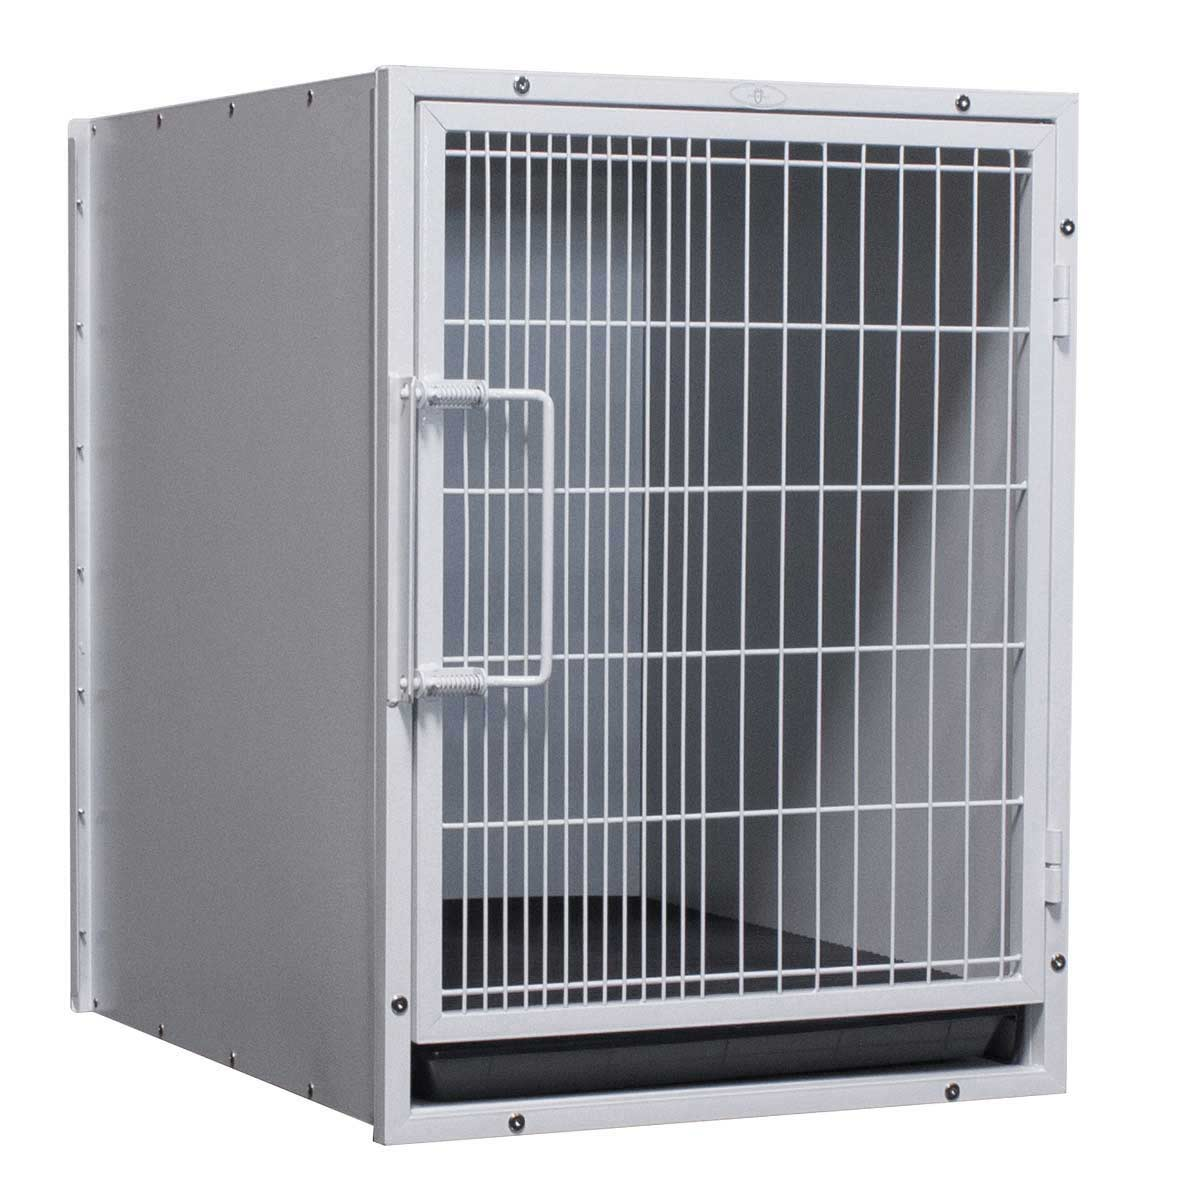 Paw Brothers Professional Medium Modular Cage - 1 Cage